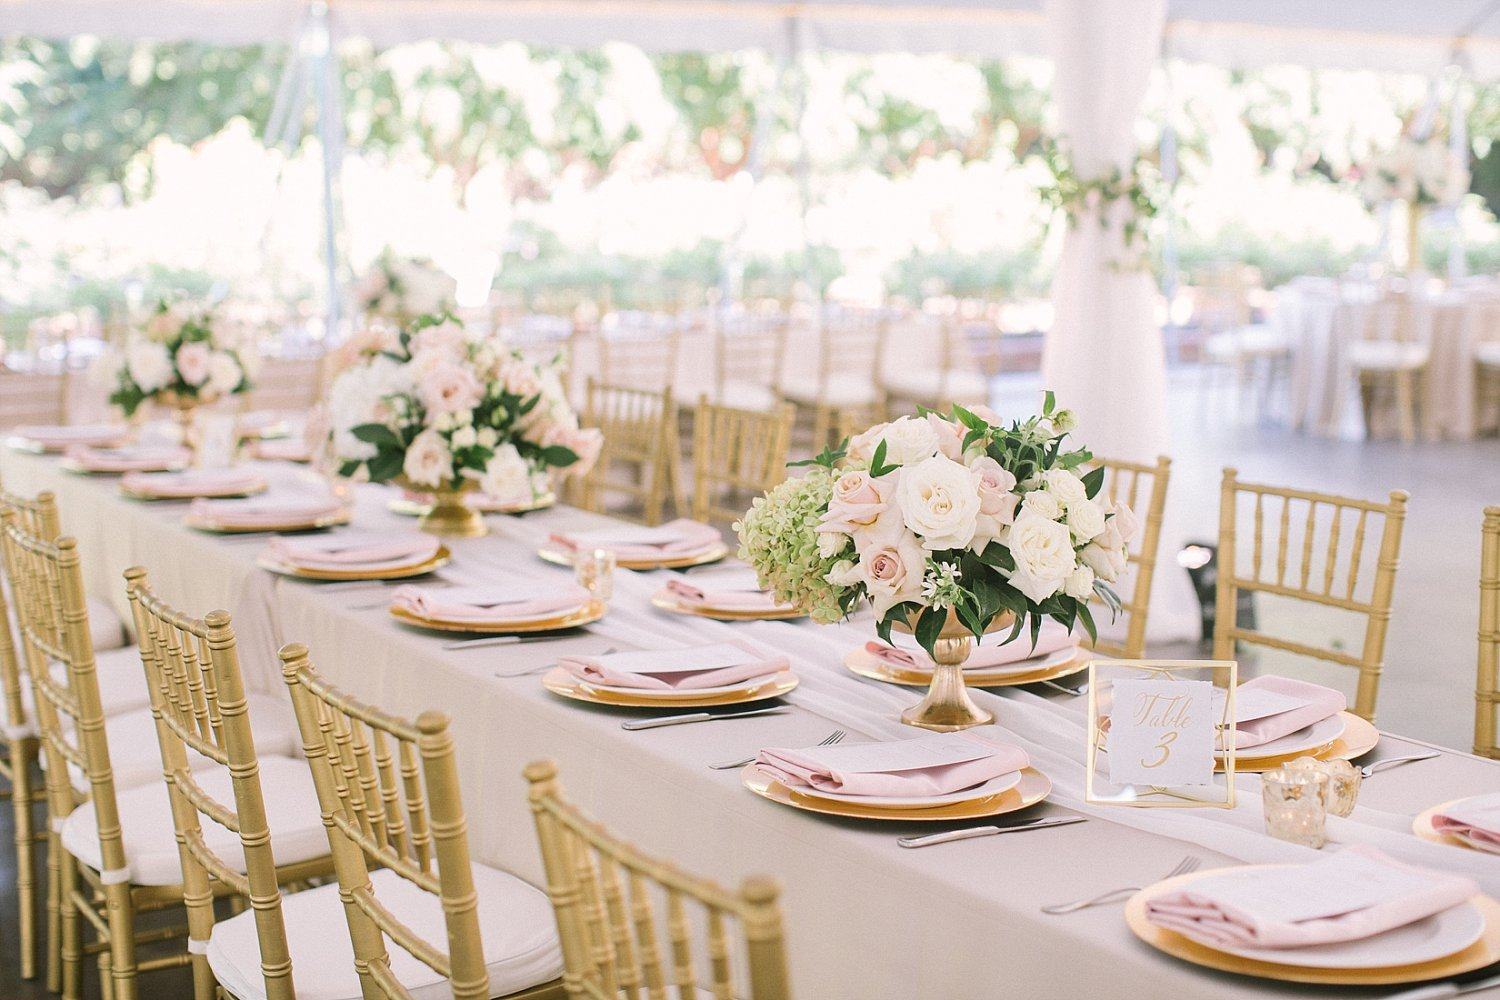 Long rectangle table with romantic flowers and blush napkins